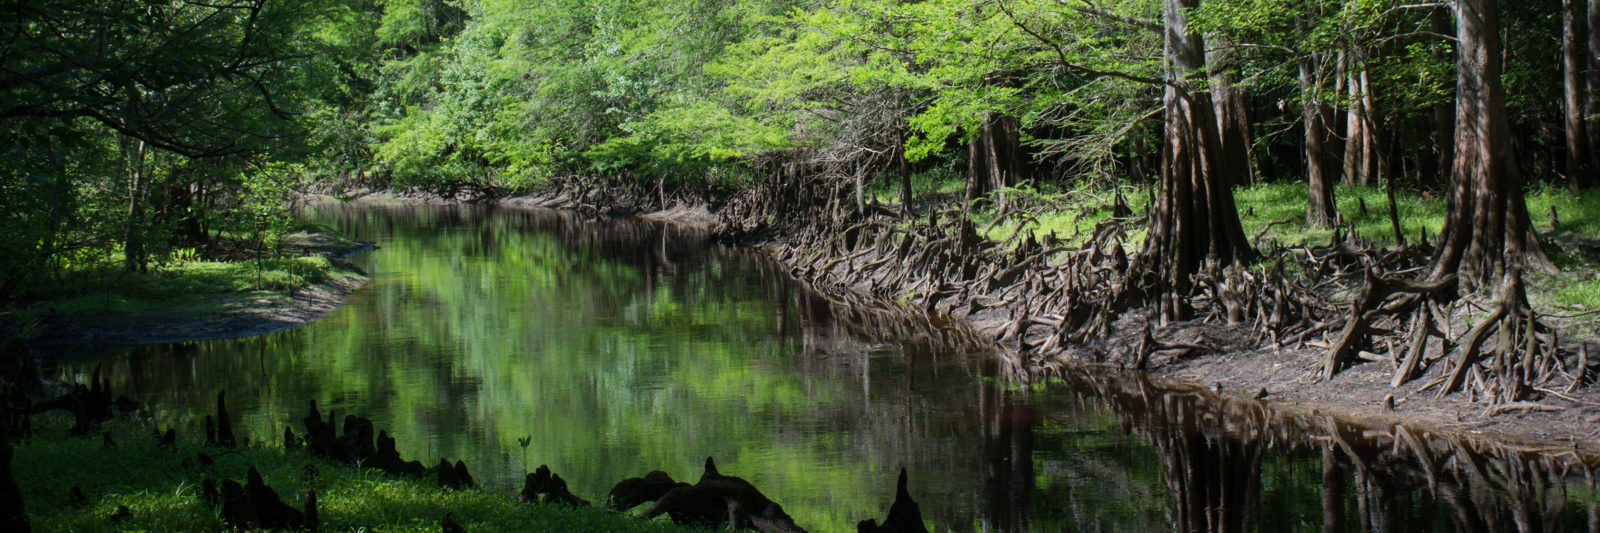 Withlacoochee River at Richloam